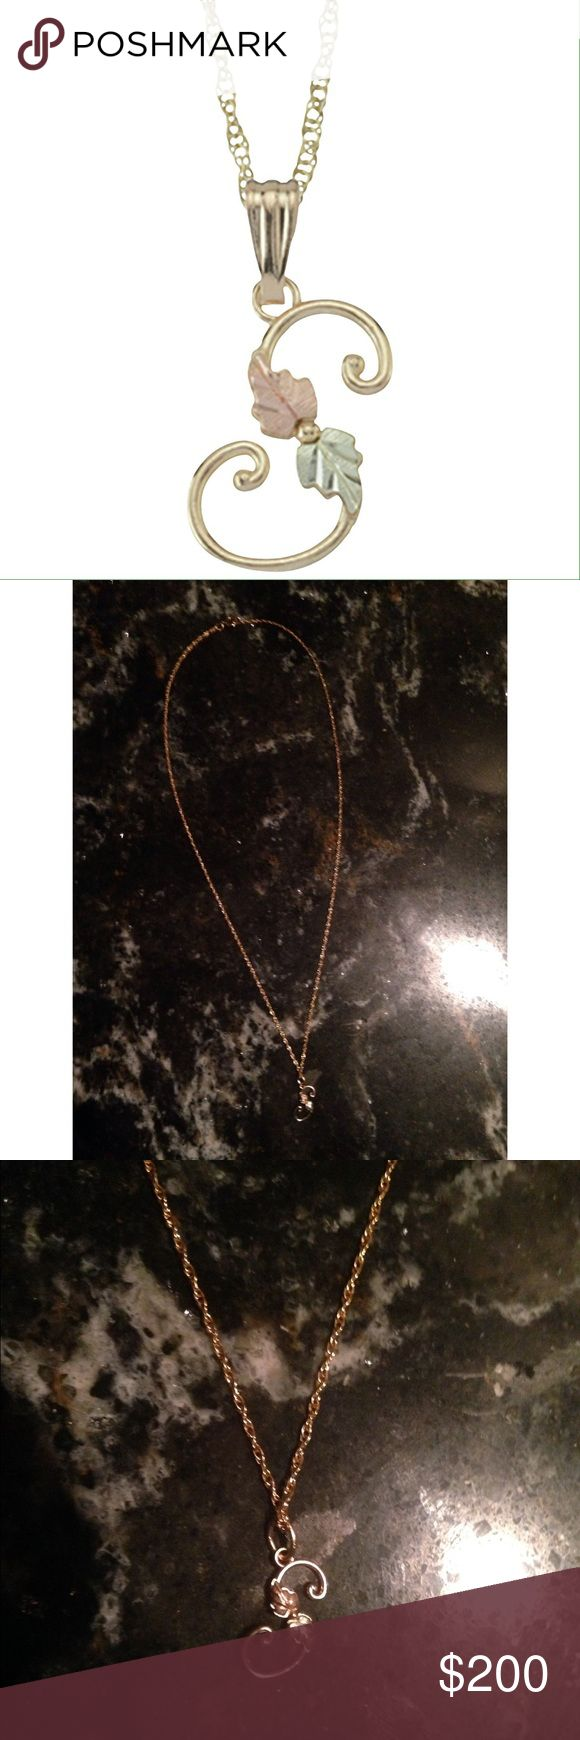 """10K Gold """"S"""" Initial Necklace Brand new - without box or tags / Authentic 10kt Gold chain and """"S"""" initial / Ladies necklace / 18 in. Gold rope chain with spring ring clasp / 12kt Rose & Green Gold leaves / made in USA / authentic black hills gold / 1.4 mm - chain width / polished finish / does not contain lead / pendant length - .65 in. / pendant width - .27 in. / purchased online Black Hills Jewelry Necklaces"""